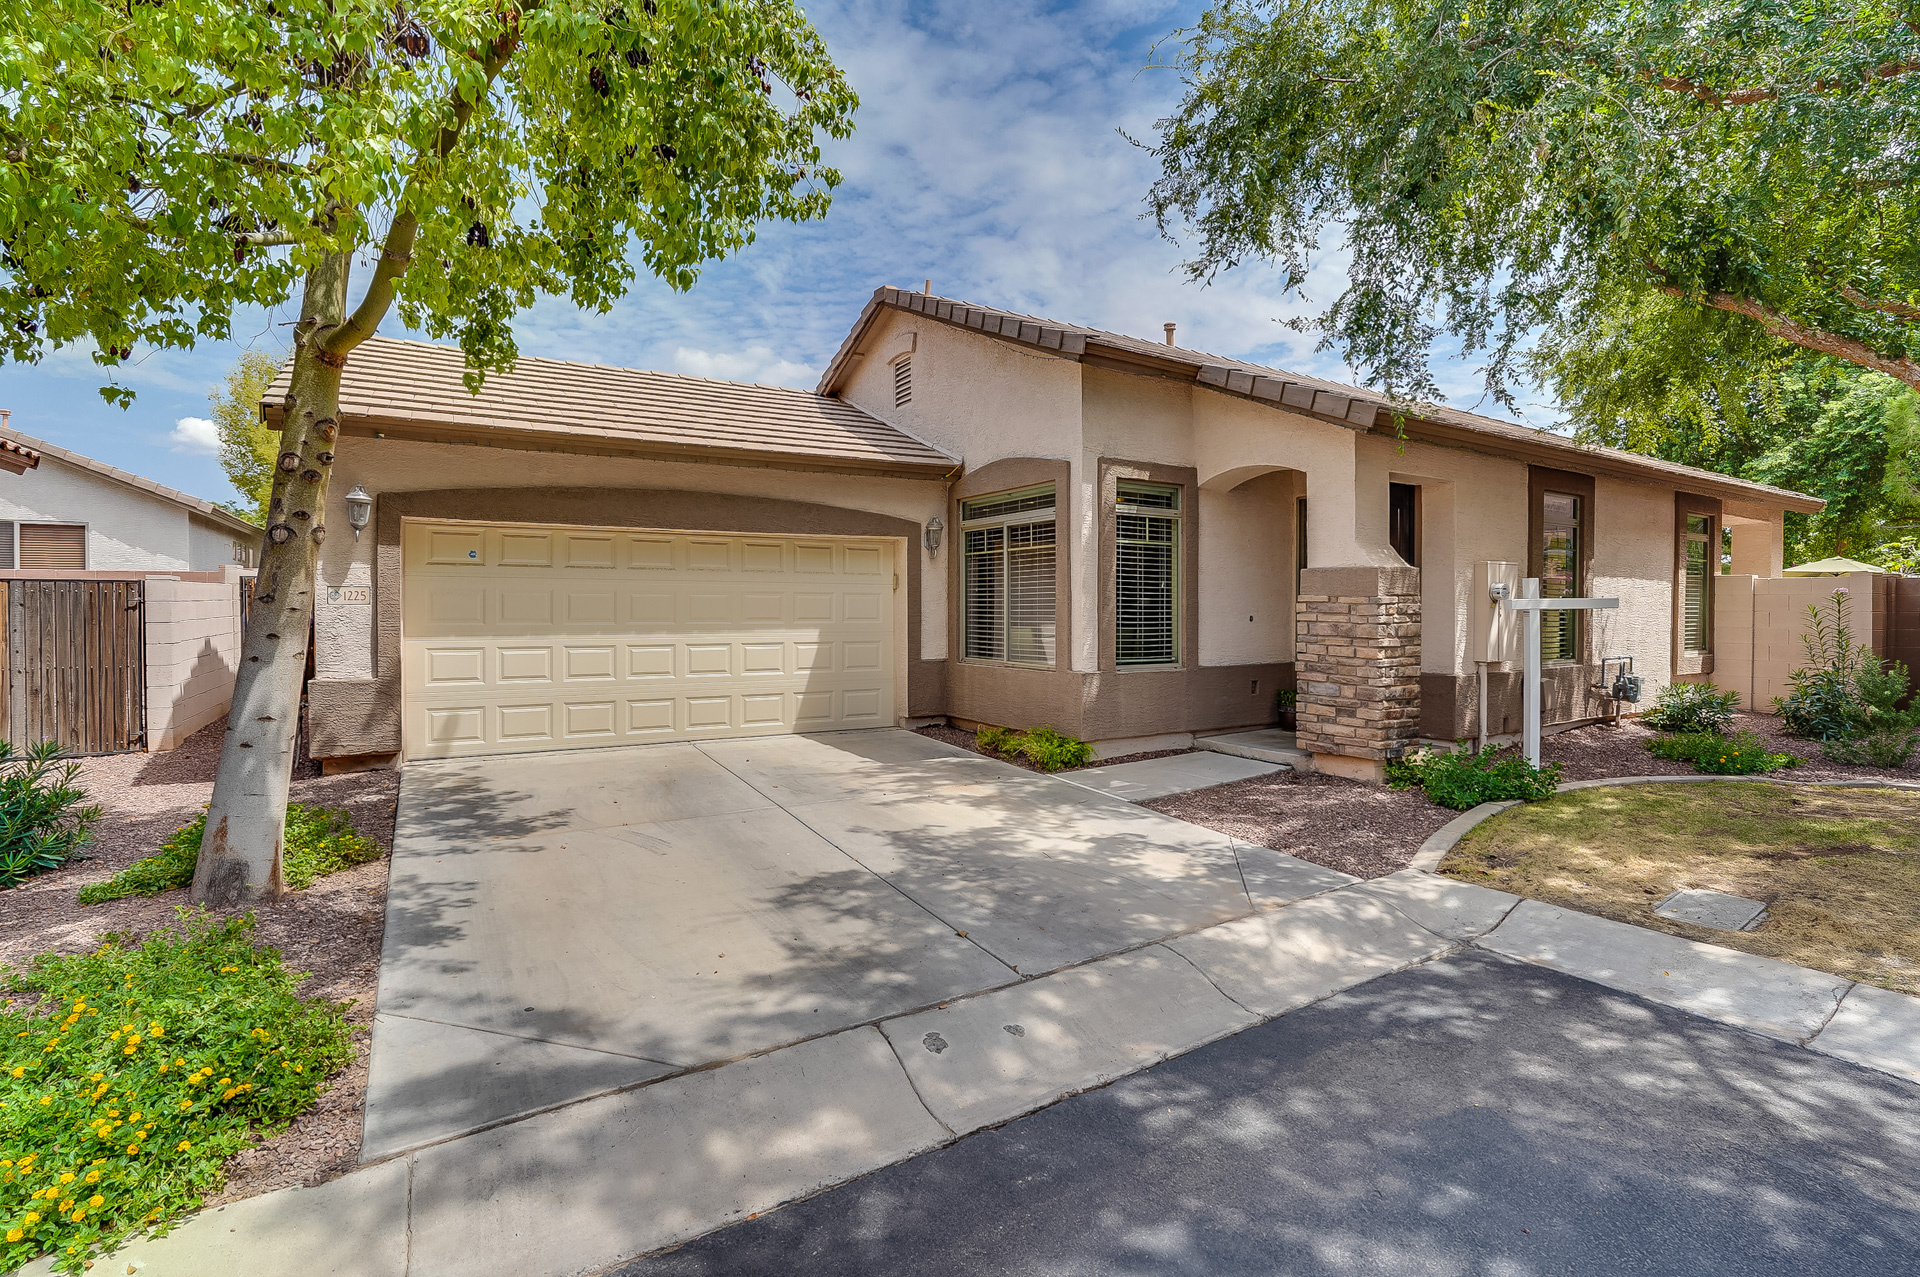 1225 S ROGER WAY <a href='https://vic.freeagentproperties.com/index.php?types[]=1&types[]=2&areas[]=city:Chandler&beds=0&baths=0&min=0&max=100000000&map=0&quick=1&submit=Search' title='Search Properties in Chandler'>Chandler</a> AZ 85286